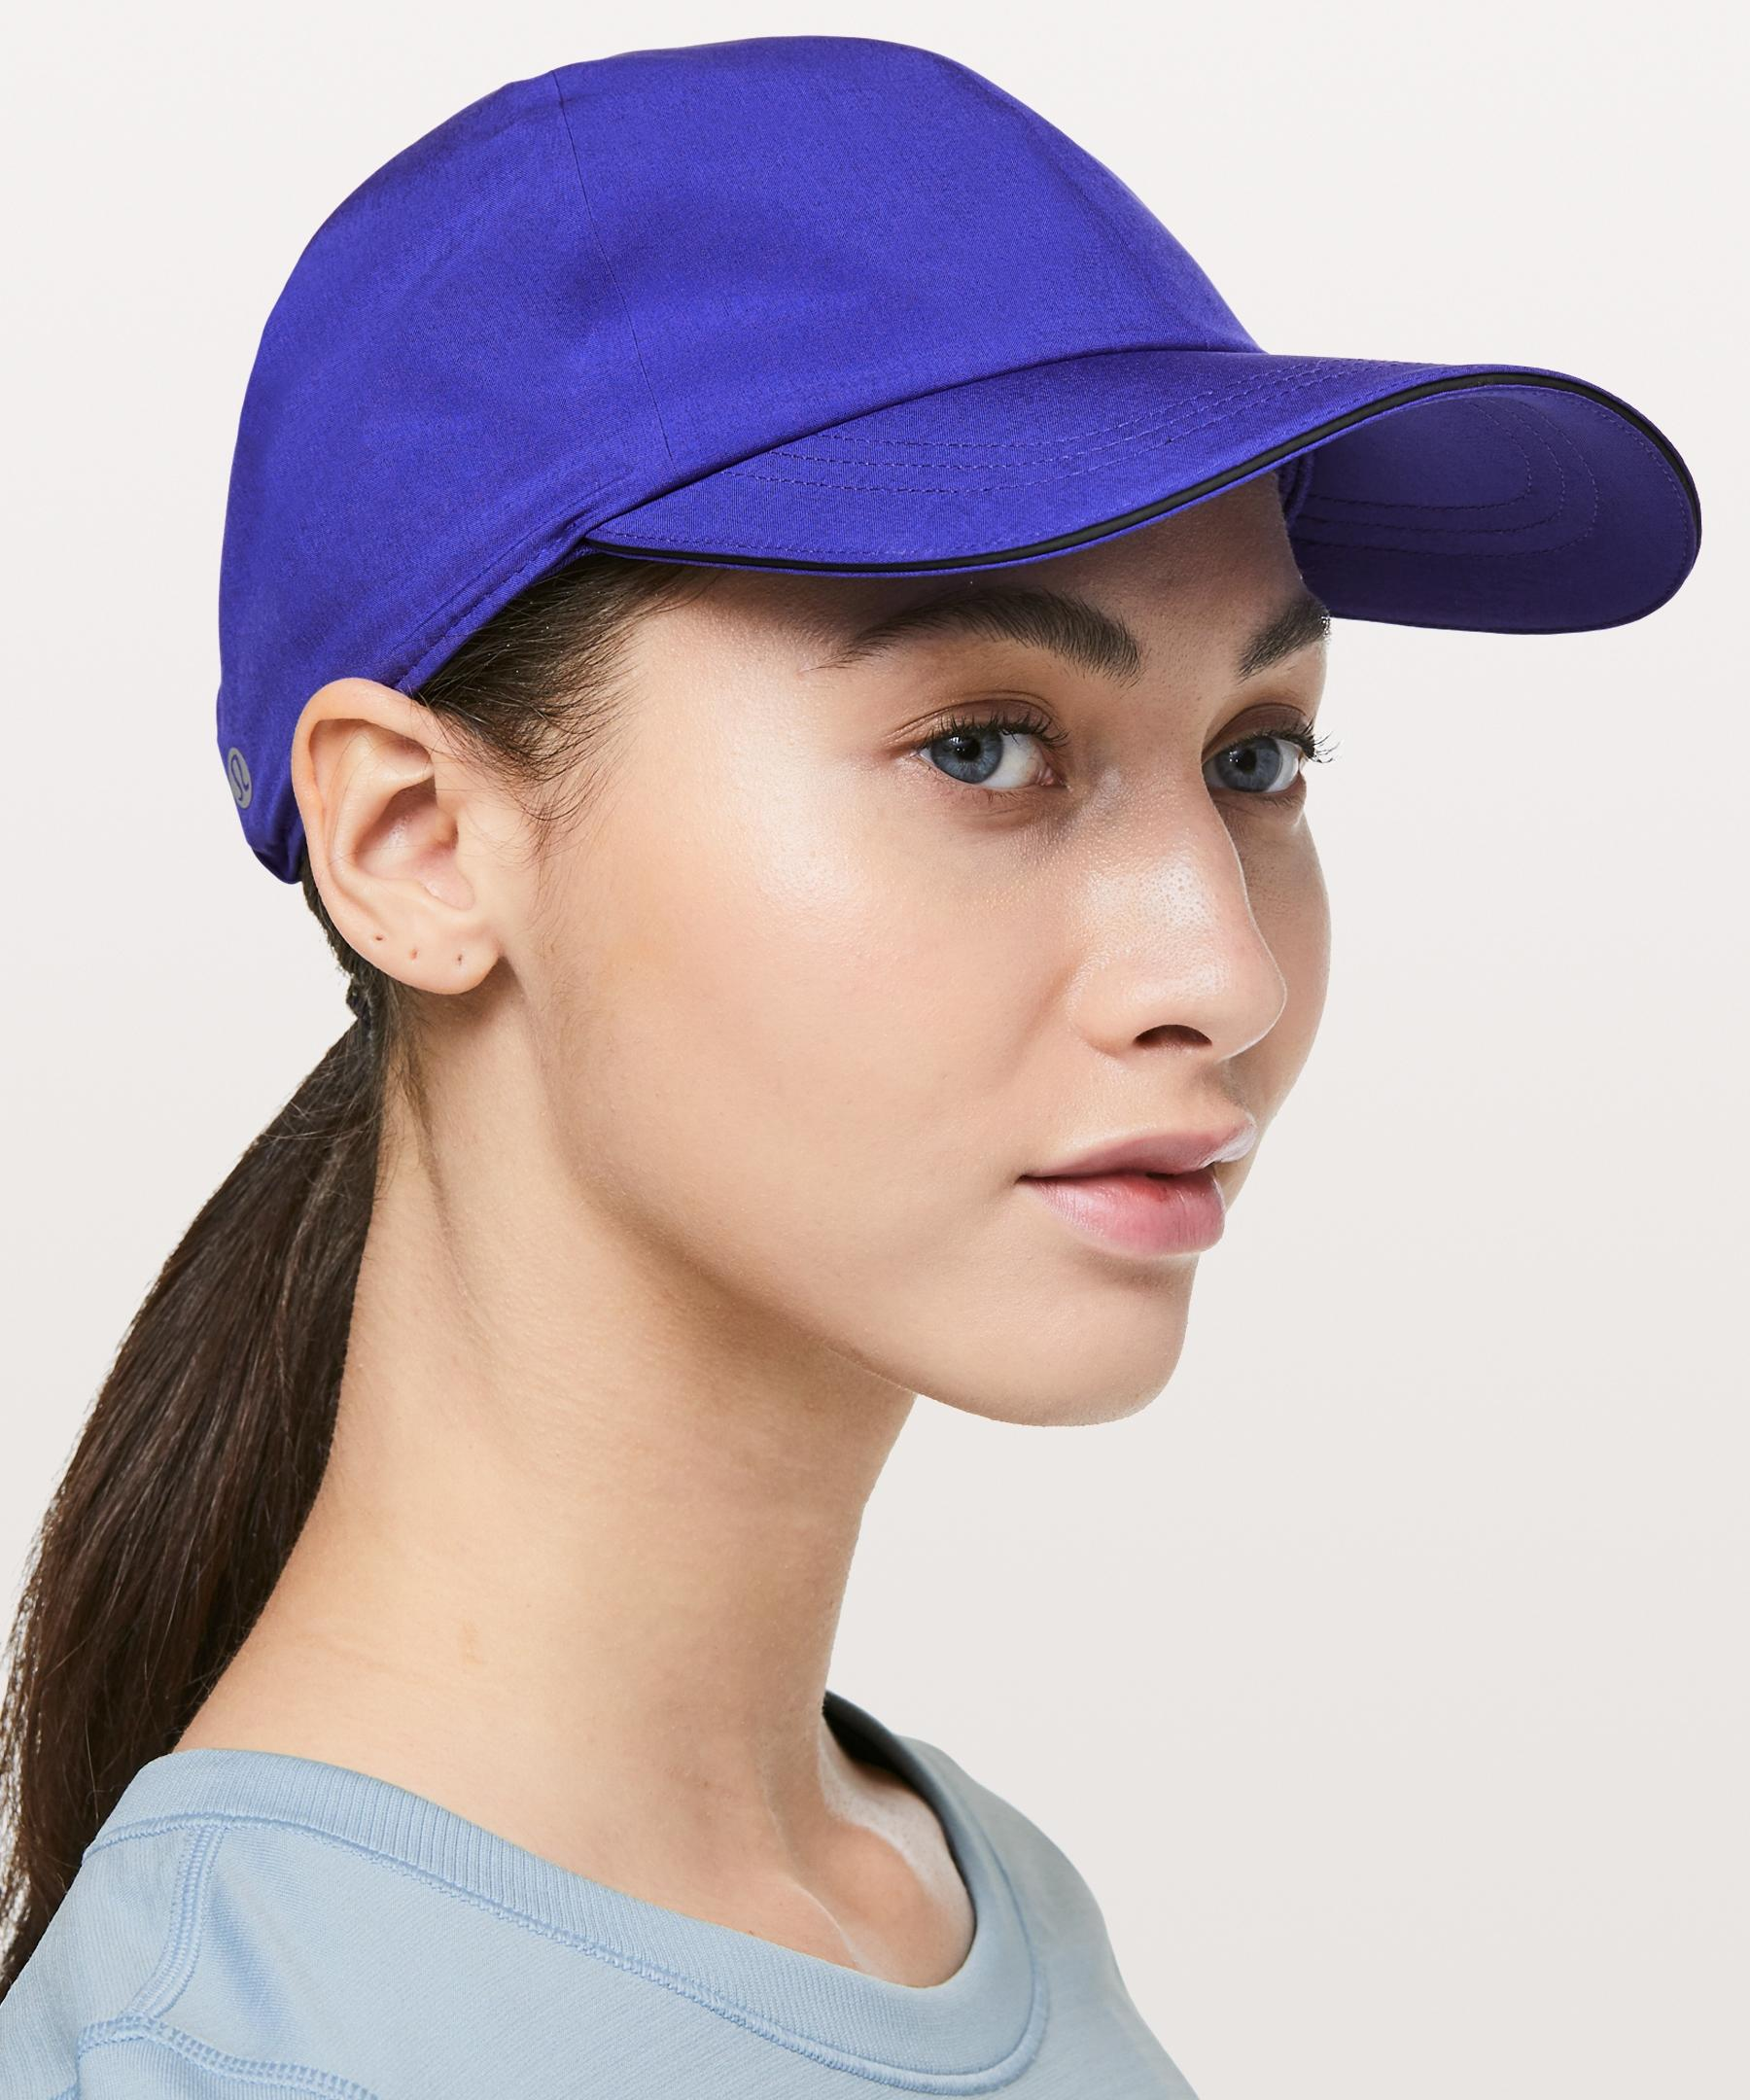 6bef868575a Lyst lululemon athletica baller hat run in blue jpg 1800x2160 Baller hat